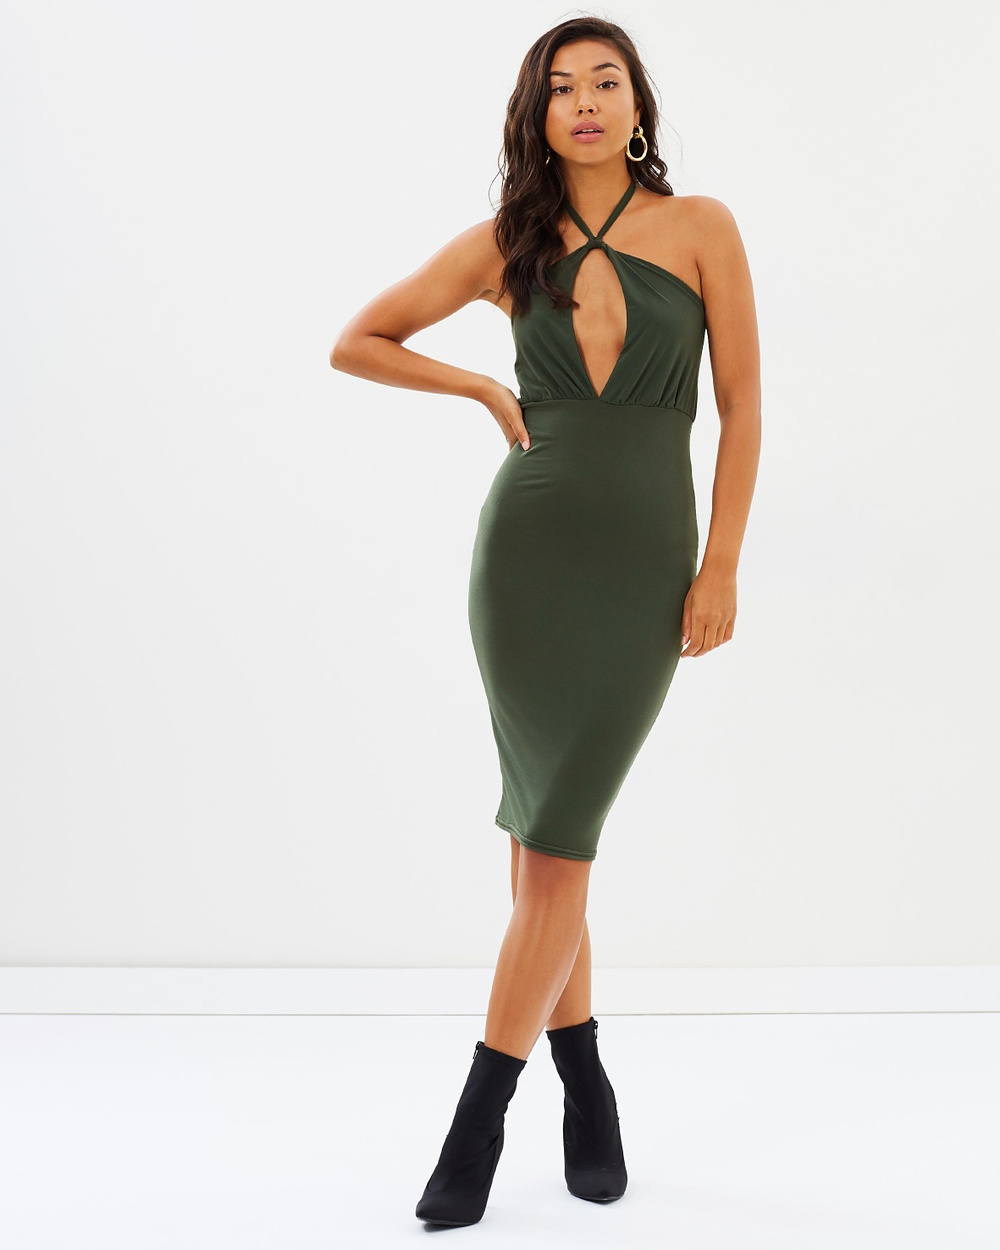 Photo of Missguided Missguided Slinky Tie Neck Twist Keyhole Midi Dress Bodycon Dresses Khaki Slinky Tie-Neck Twist Keyhole Midi Dress - Bold and straight-talking, UK fashion brand Missguided takes on global influences of street style and popular culture to deliver a confident collection of figure-hugging bodycon dresses, streetwear-inspired tracksuits and tongue-in-cheek slogan tees to equip millennial women with the power of fashion. Offering the latest catwalk trends at prices you can